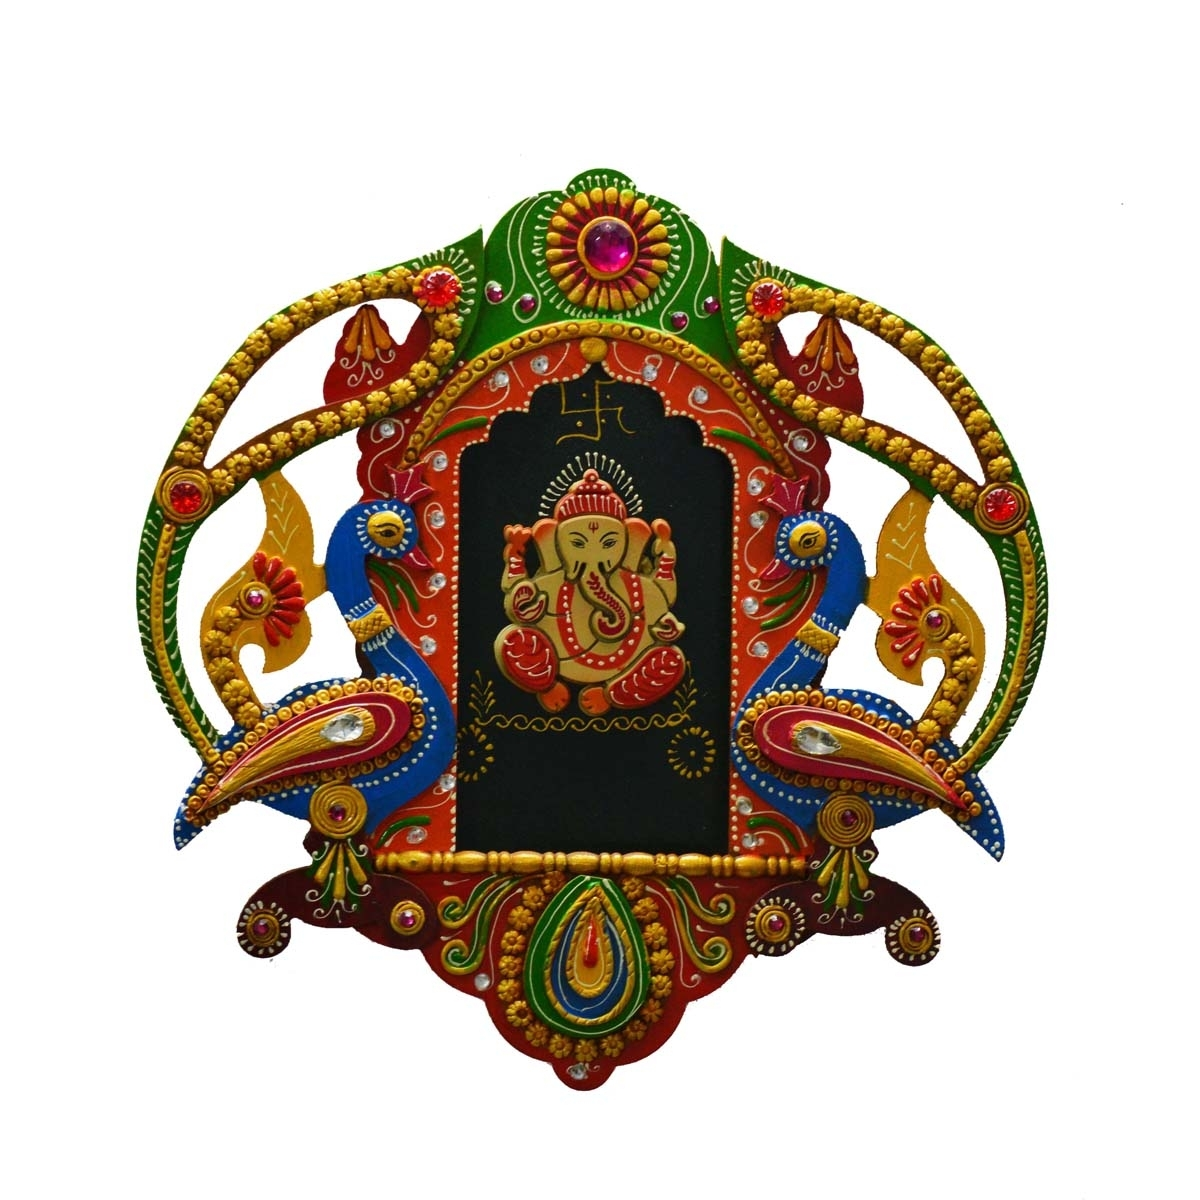 Papier-Mache Lord Ganesha with Peocock Wall Hanging Indian Home Decor